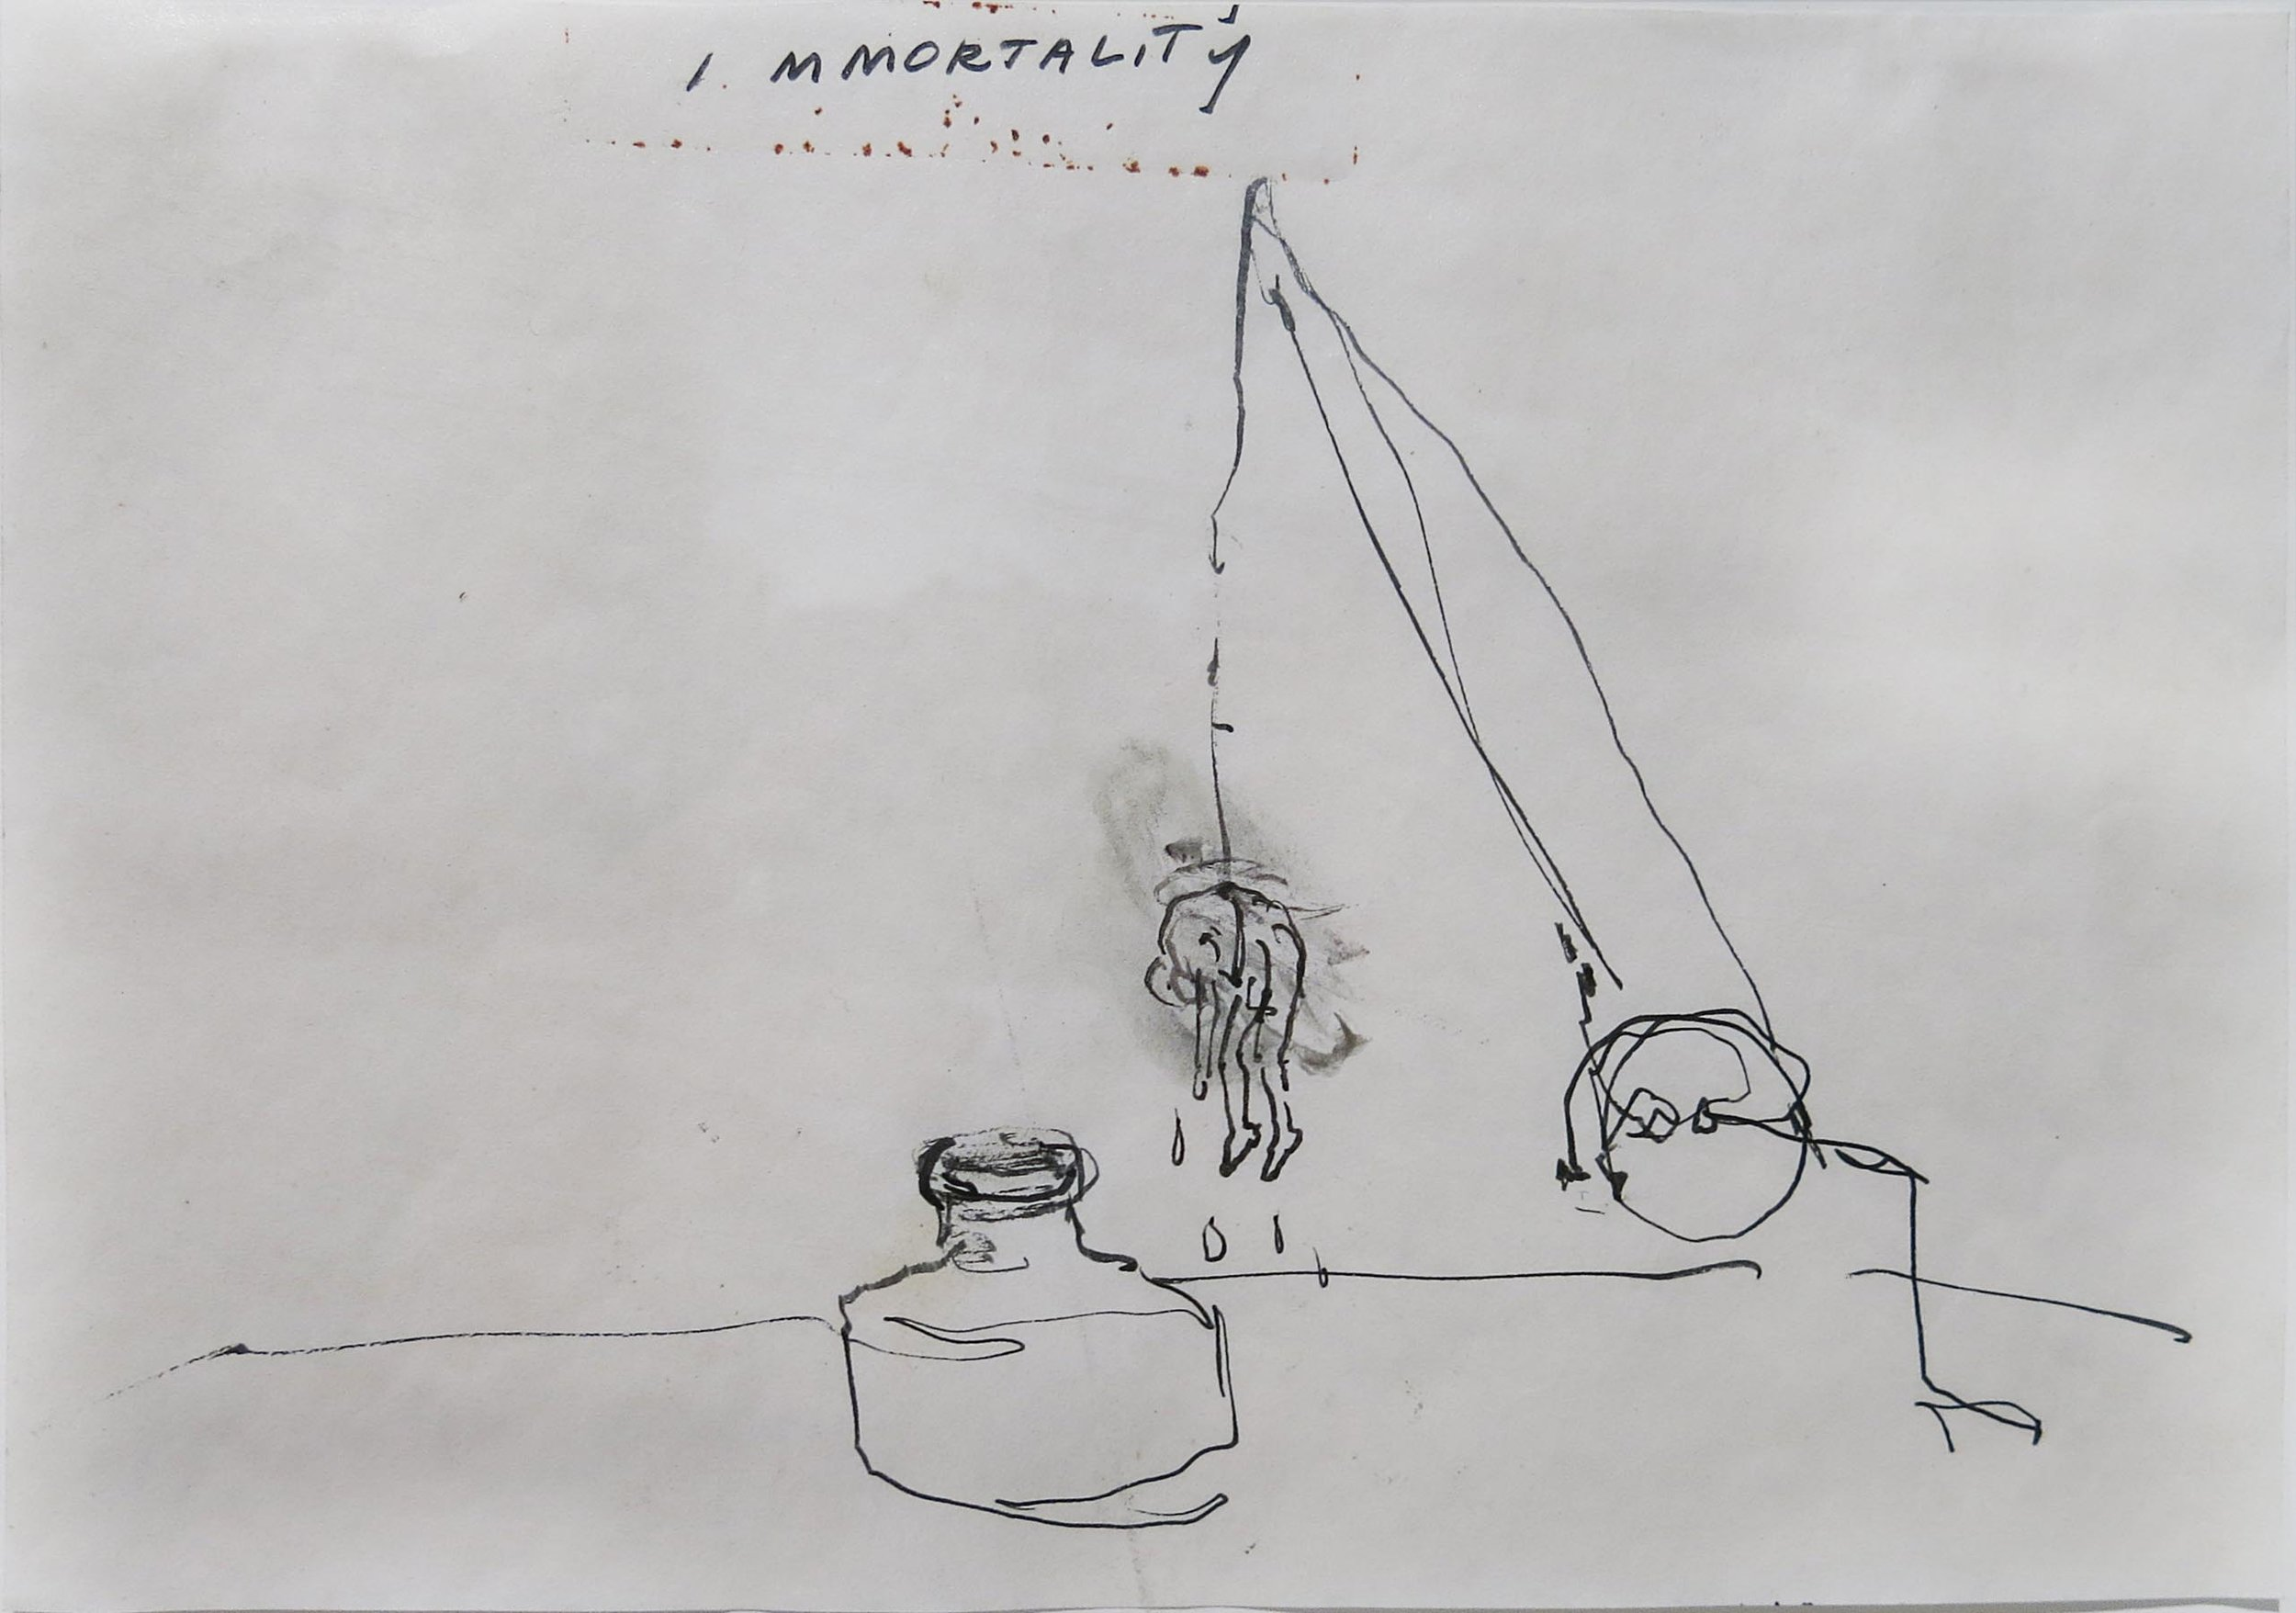 June Leaf, Immortality, 1978, Ink on paper, 6h x 8.25w in.